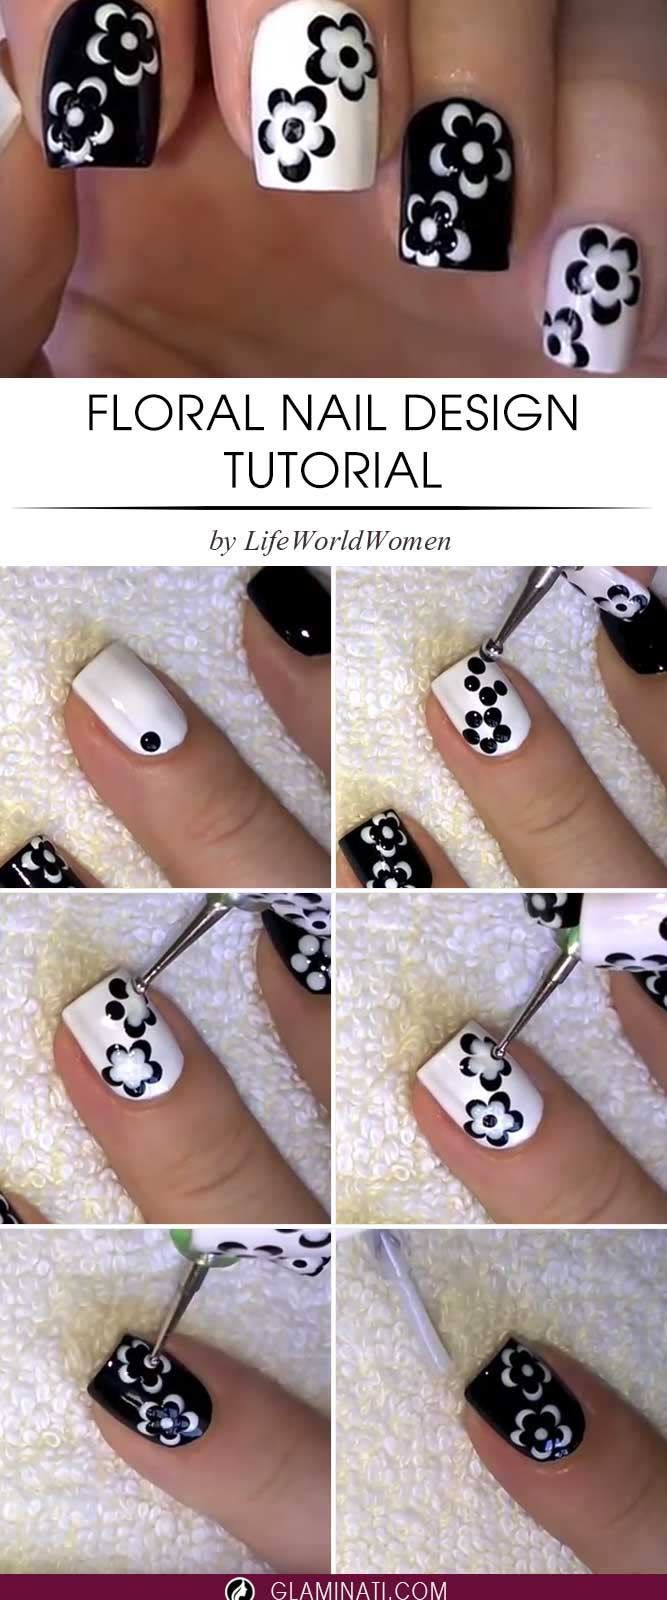 13 Three Step Easy Nail Designs And Tutorials You Will Absolutely